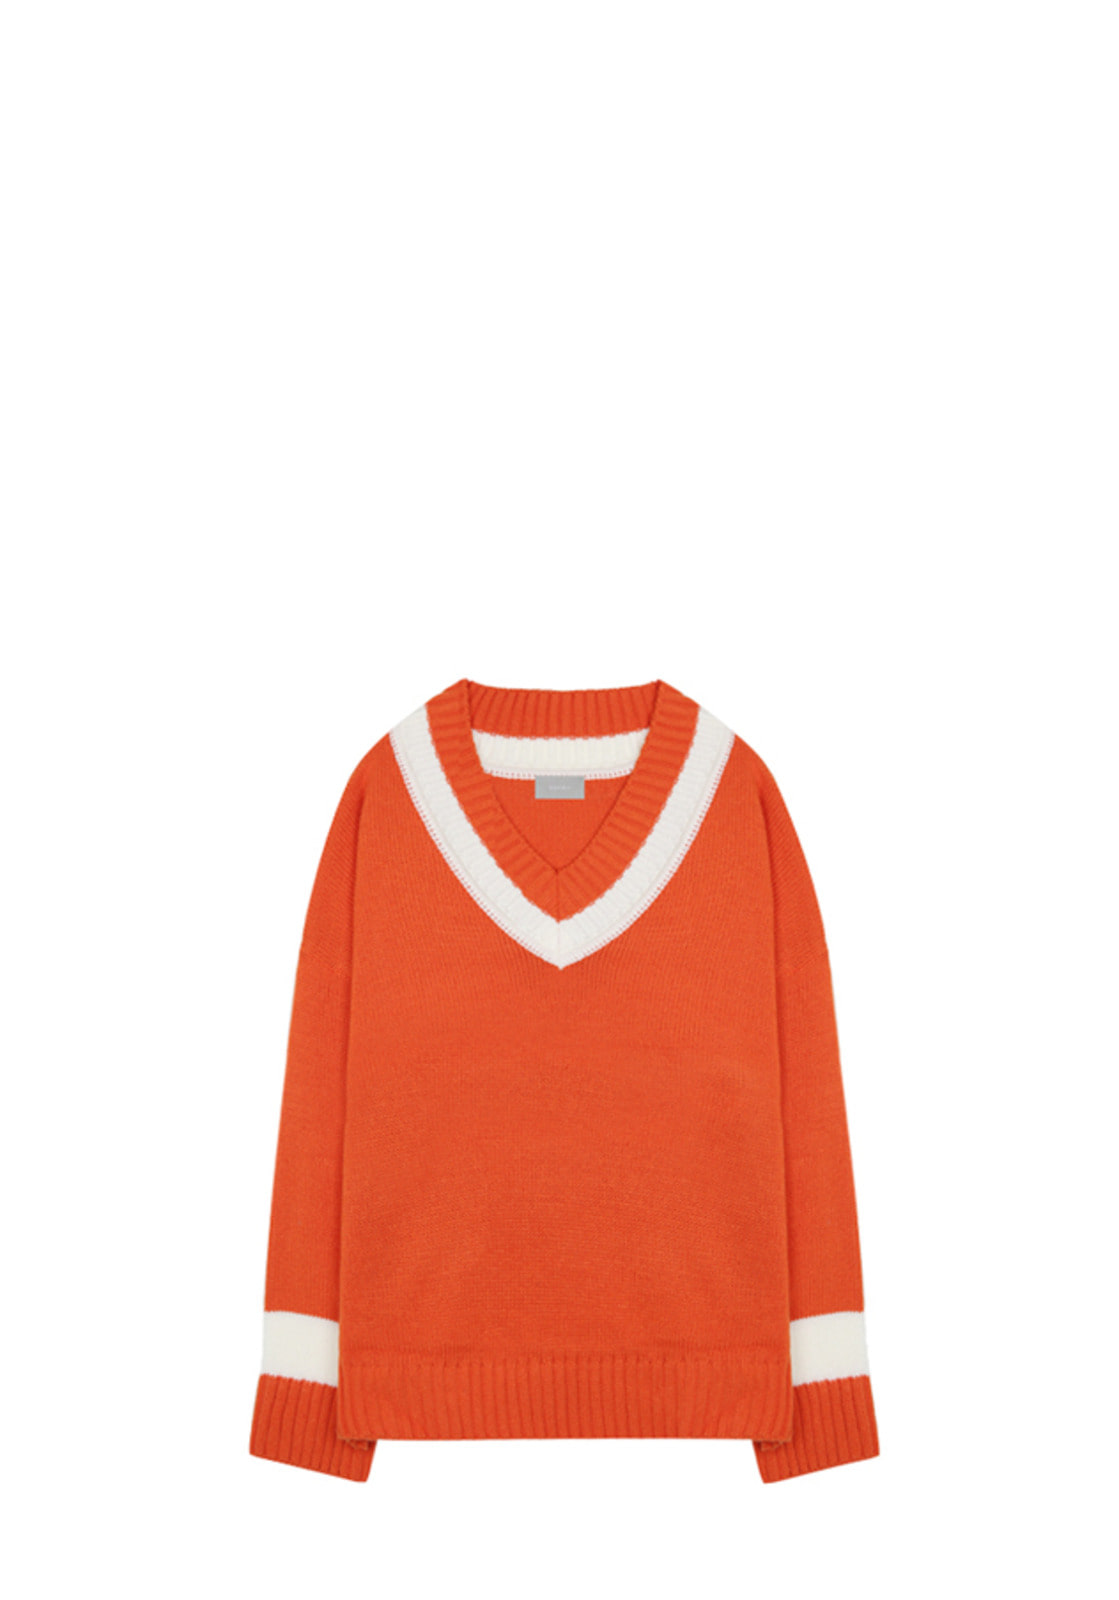 V531 DOUBLE V-NECK KNIT ORANGE